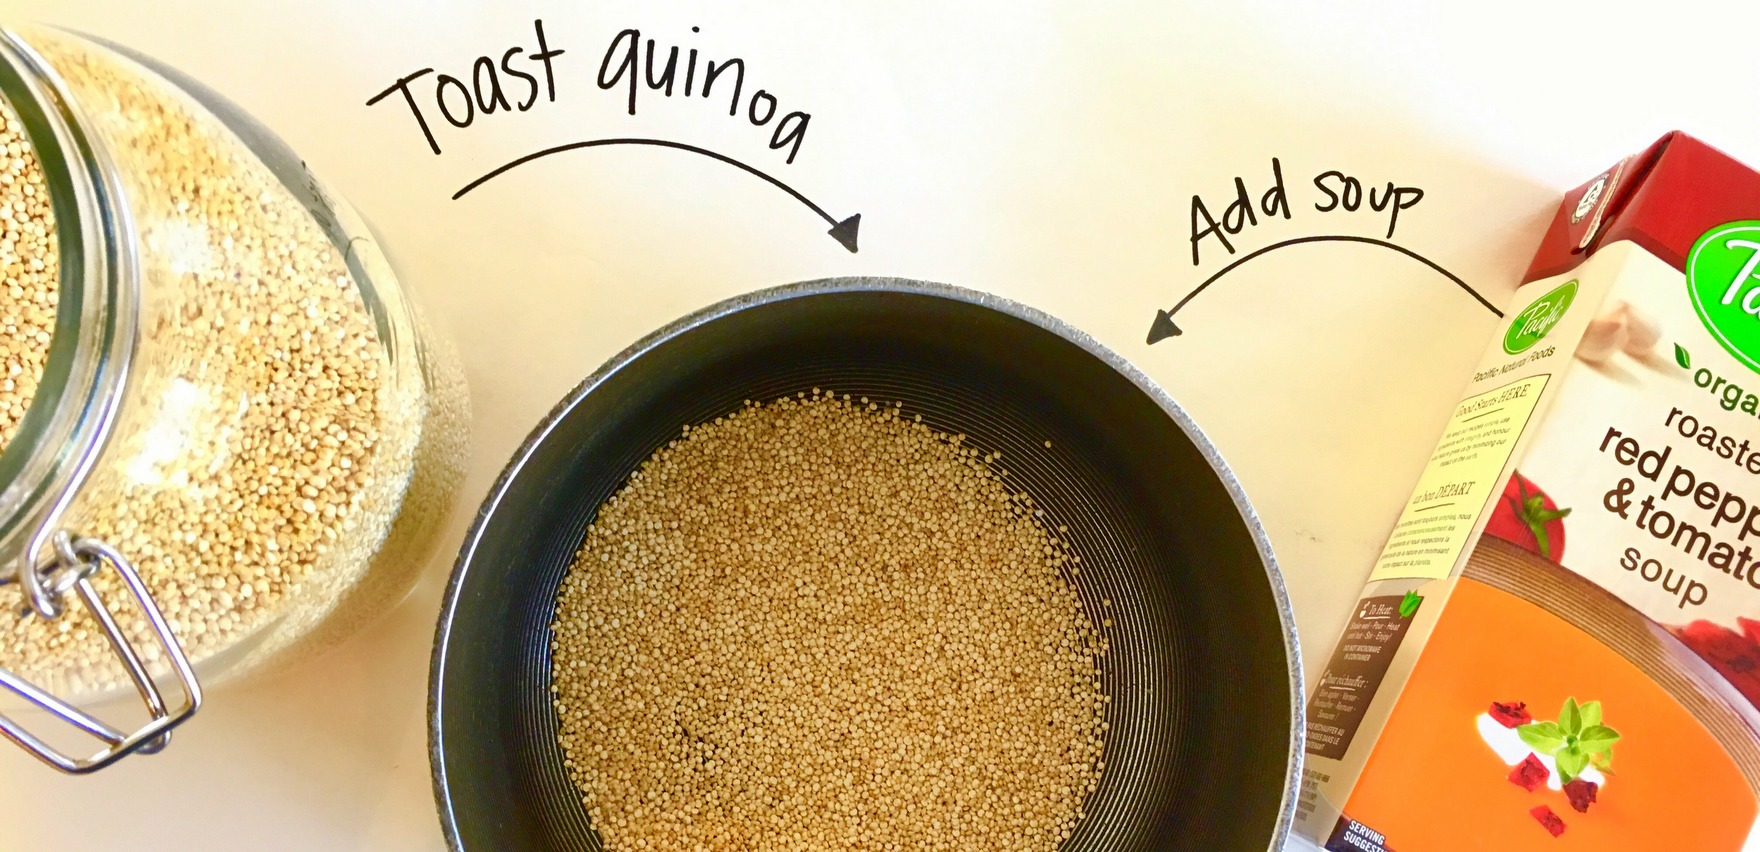 Soup with quinoa